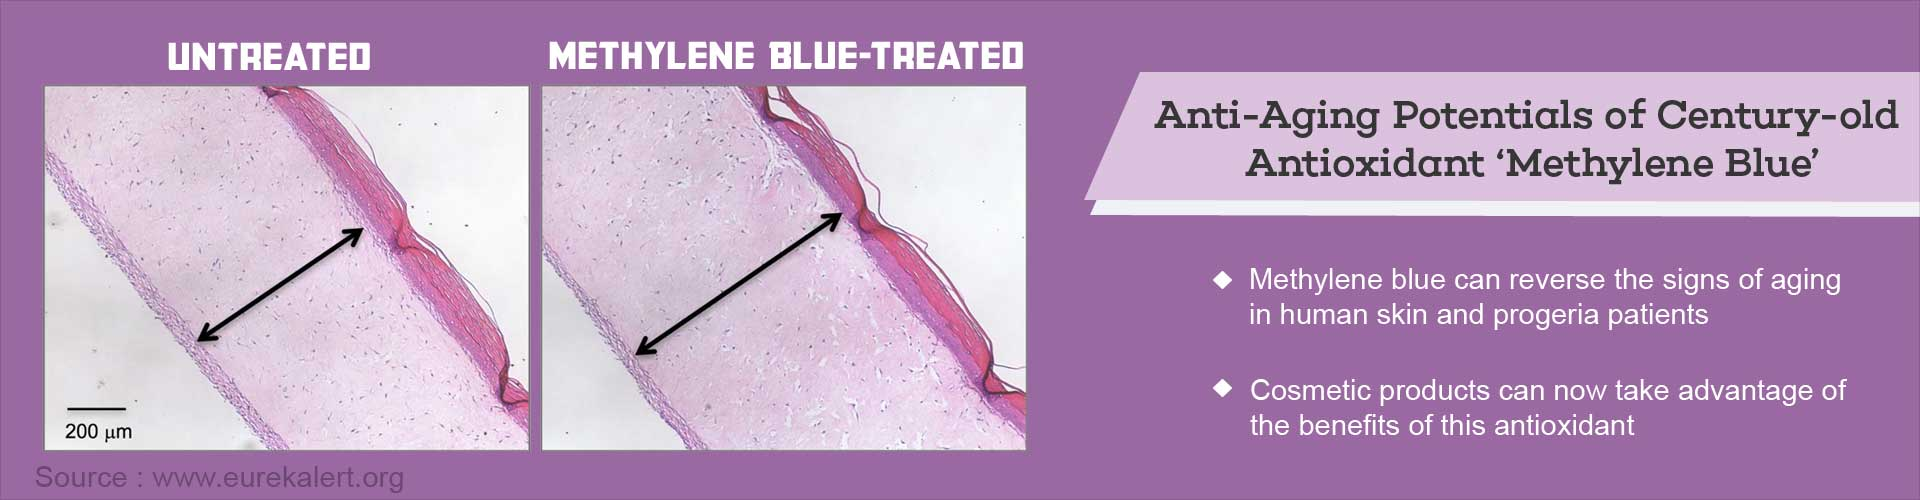 Now Antioxidant Methylene Blue can Give You Youthful Skin